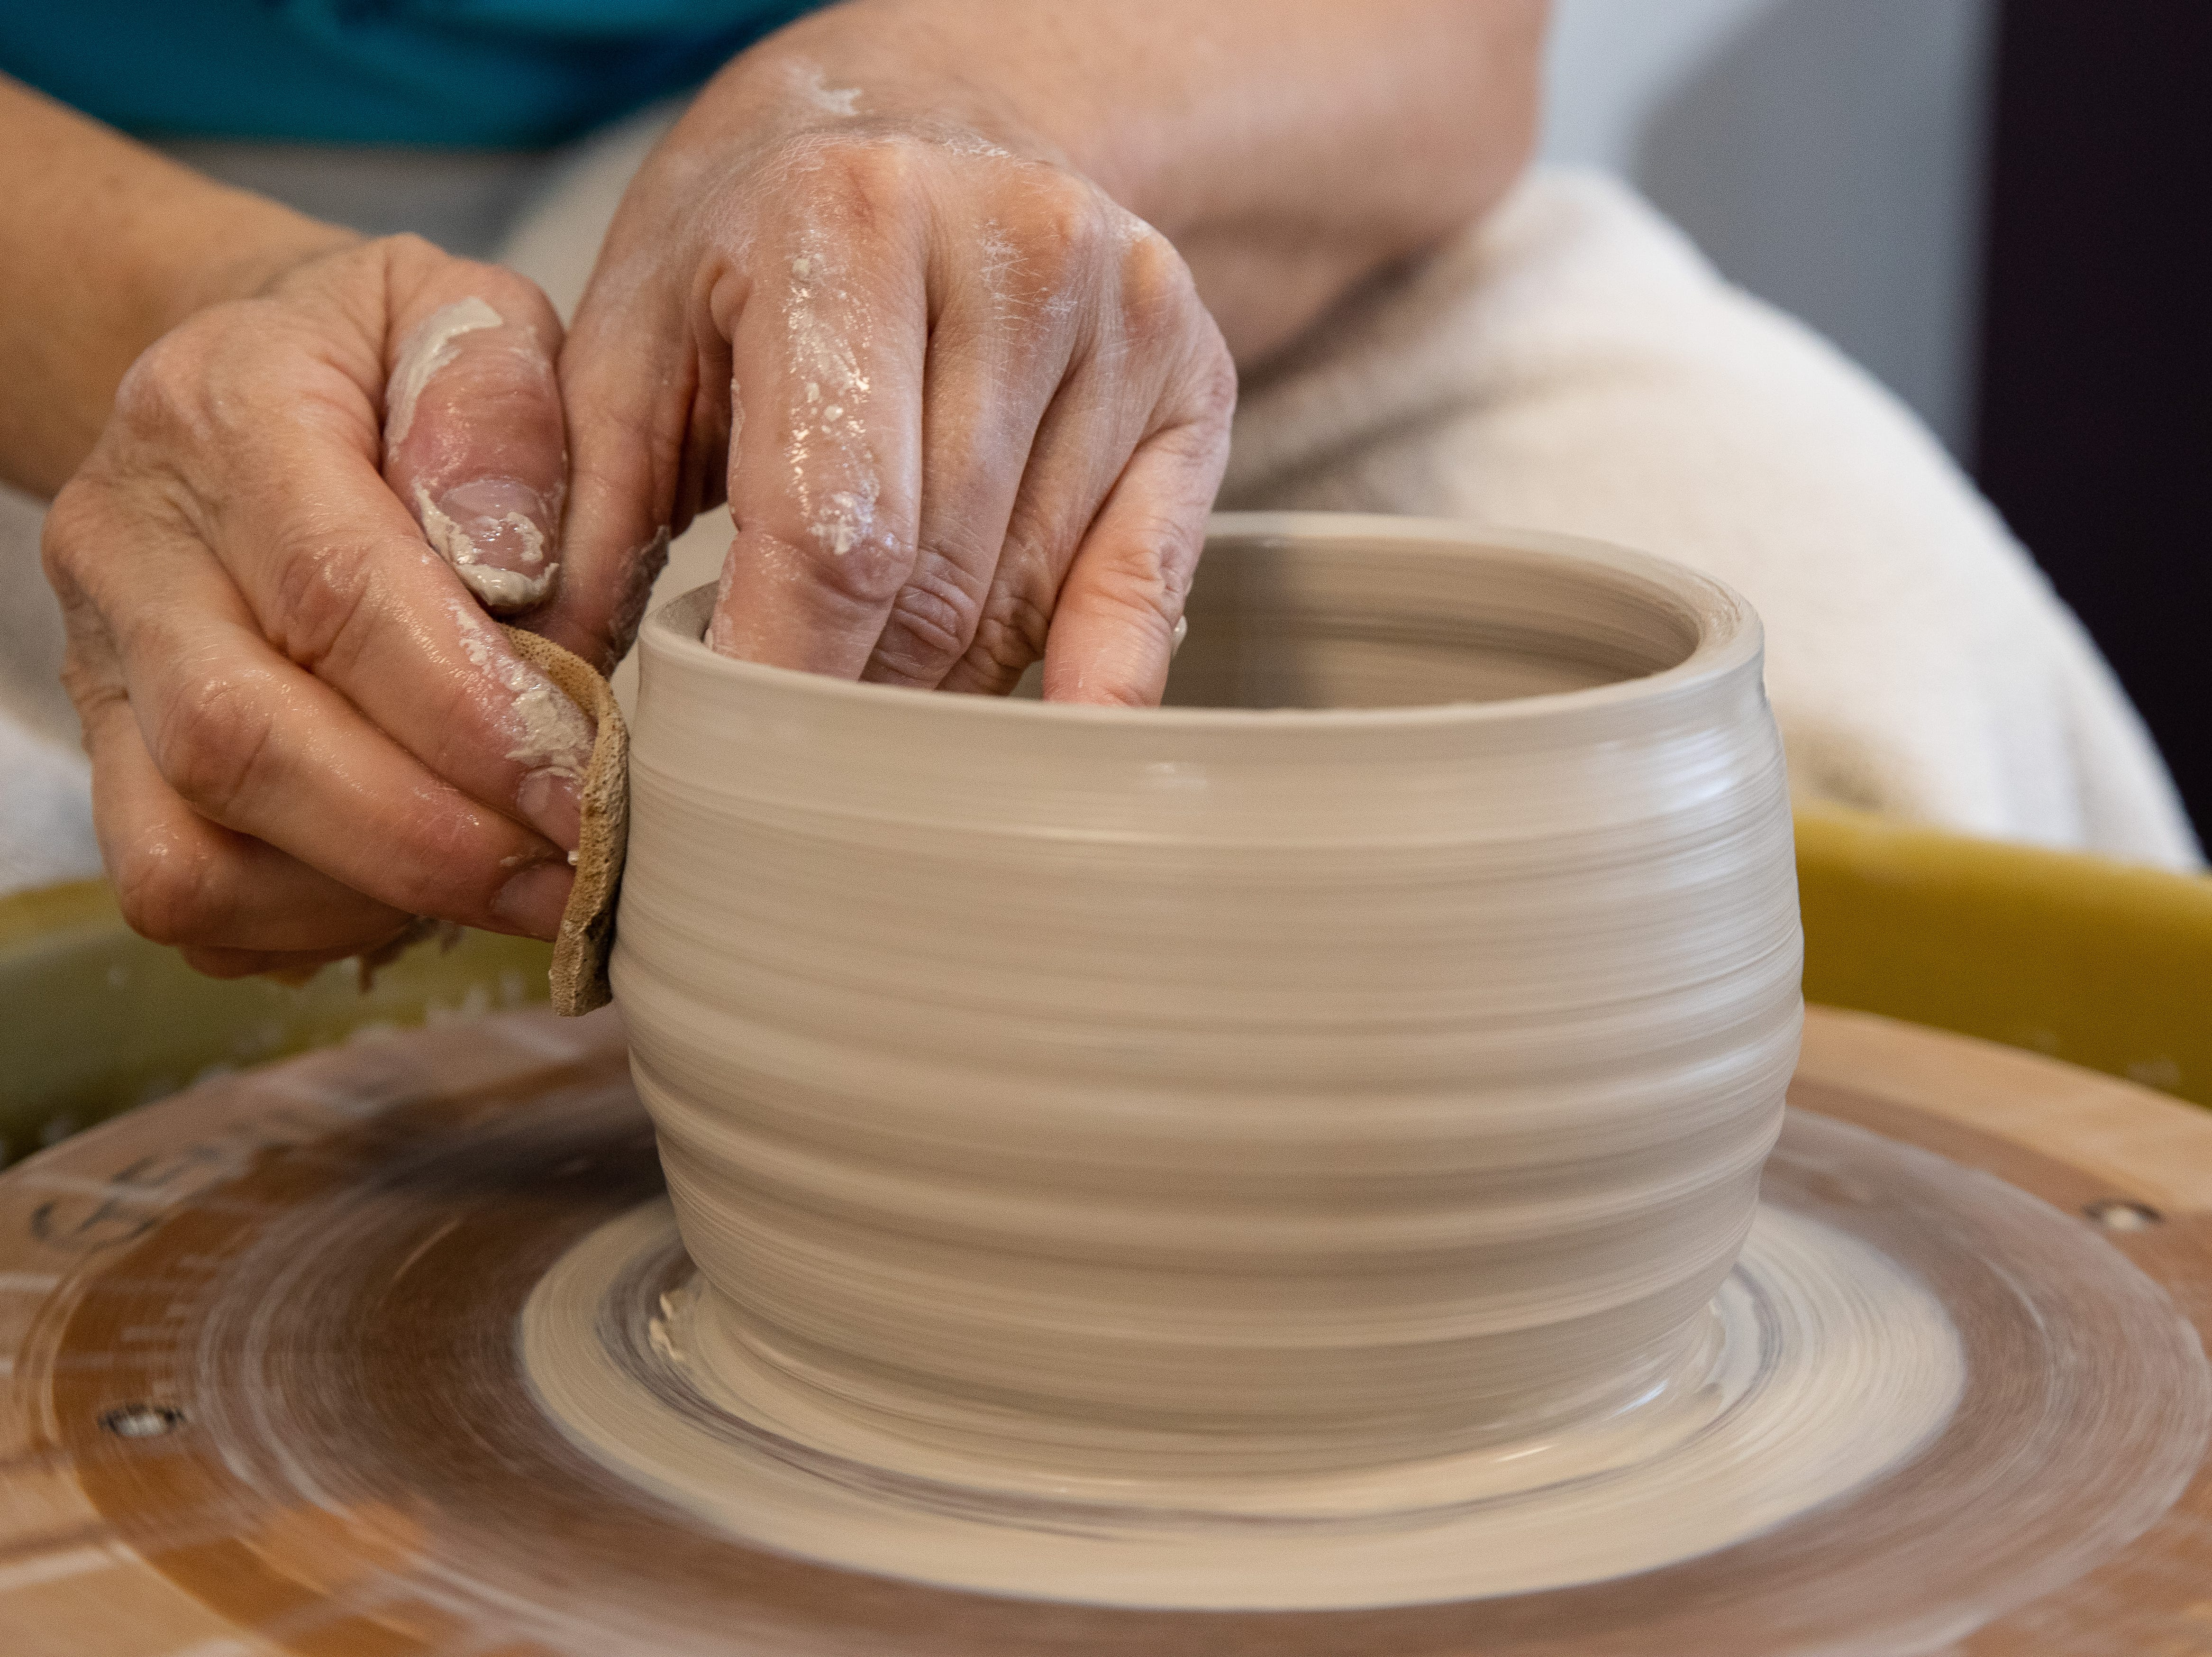 Genie Mysorski works with clay at the Wind Way Gallery at 203 South Austin Street in Rockport.